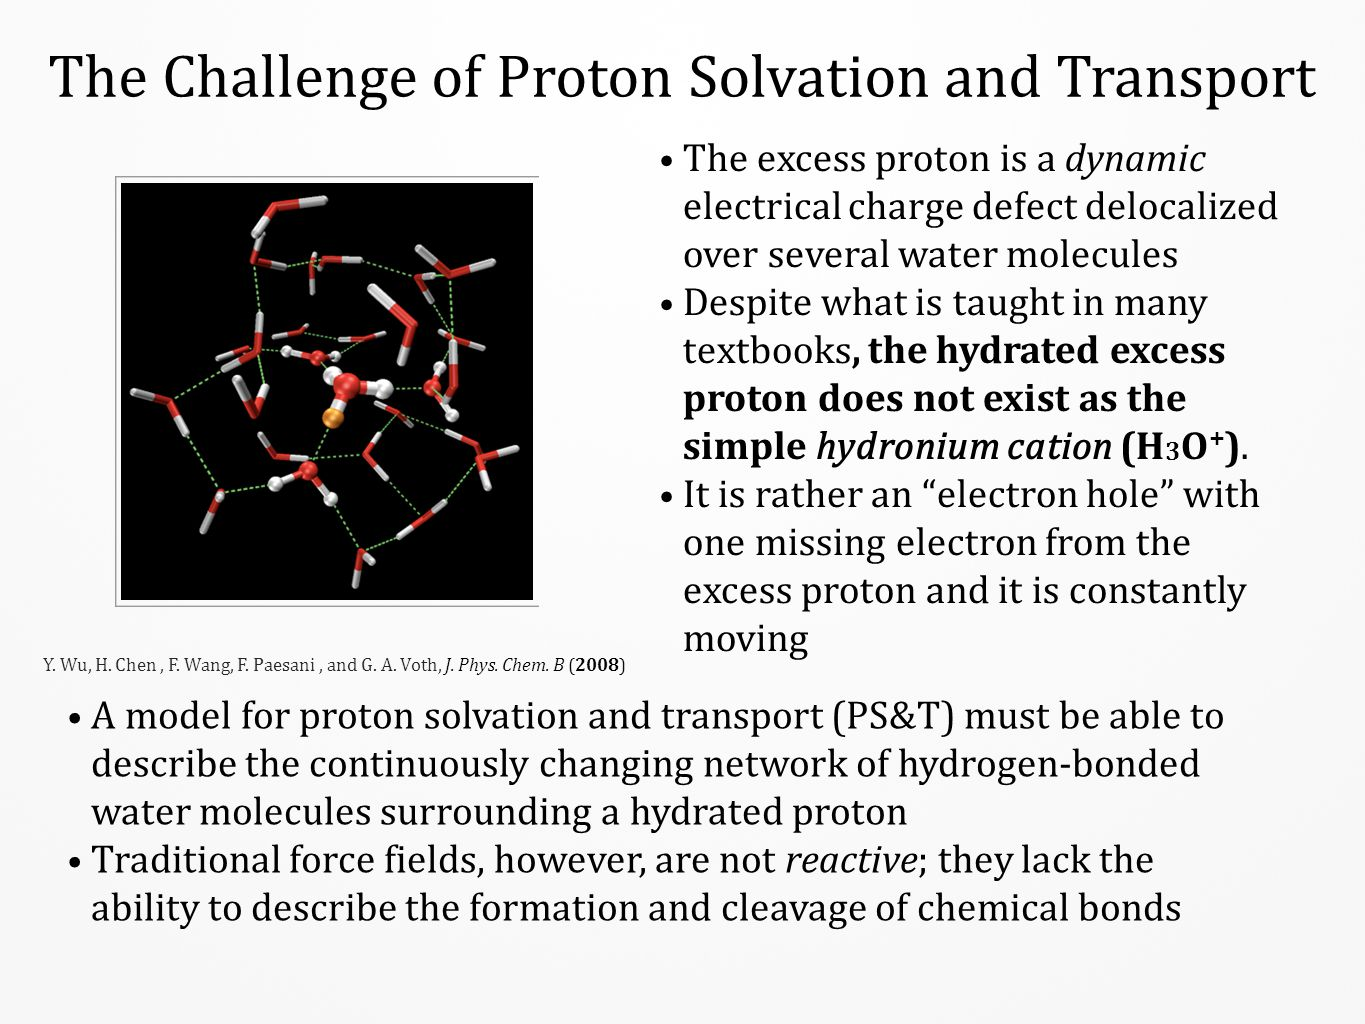 The Challenge of Proton Solvation and Transport